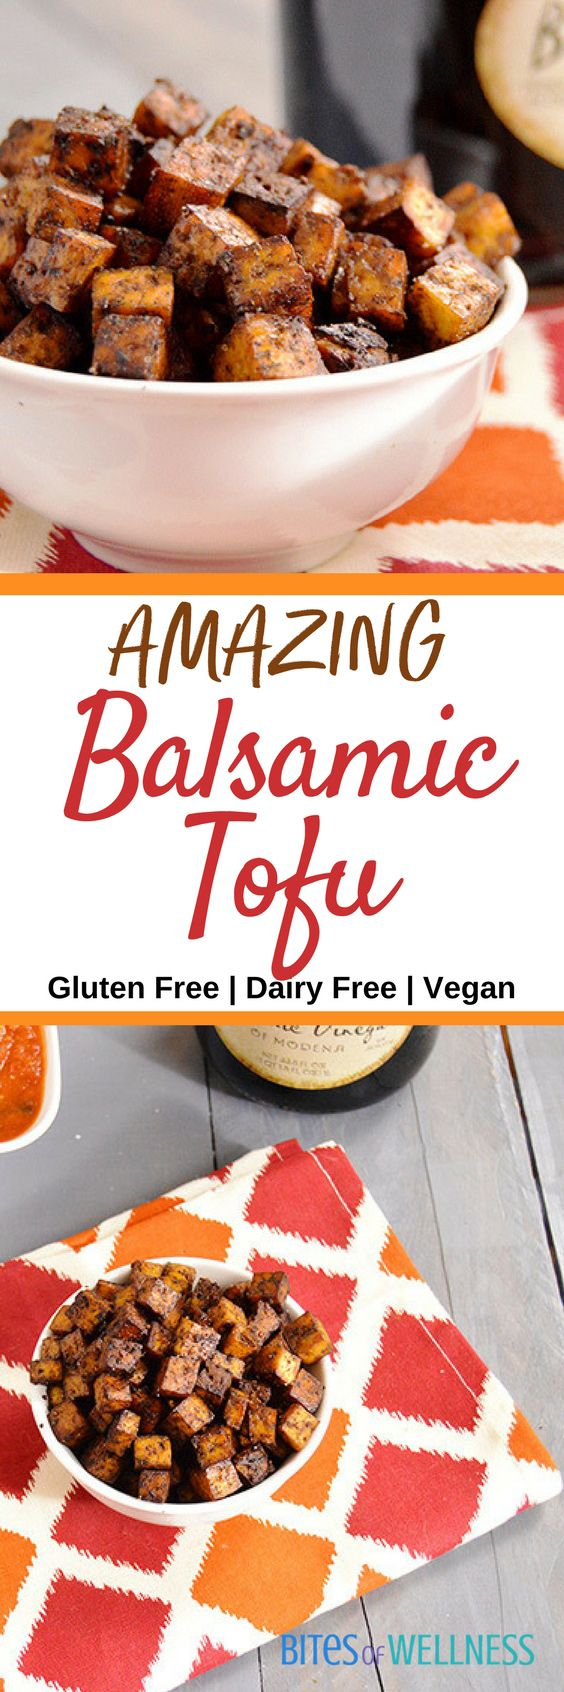 This Balsamic Tofu is tofu like you have never had it! Crispy, not mushy, full of balsamic flavors and pairs perfectly with your favorite Italian dishes! | https://bitesofwellness.com